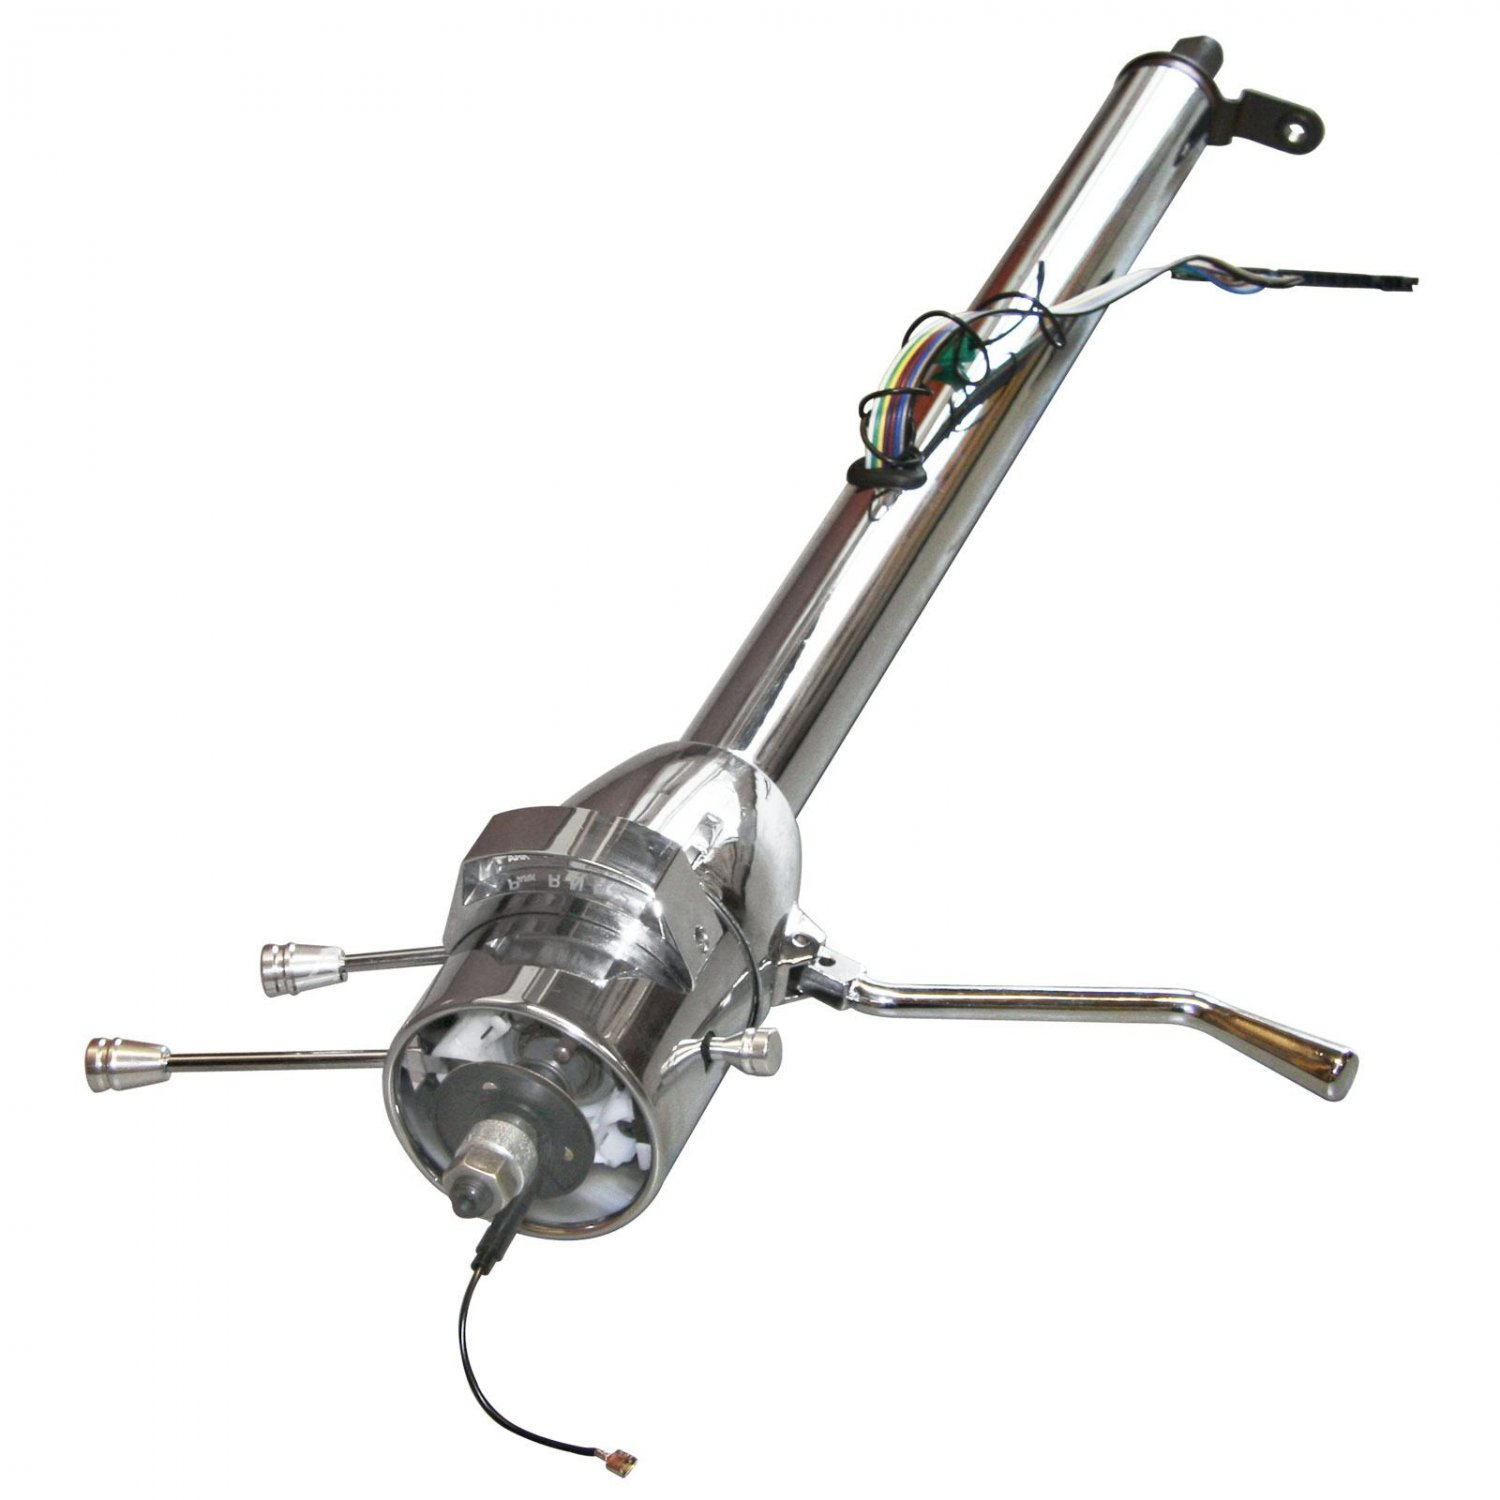 Gm Tilt Steering Column